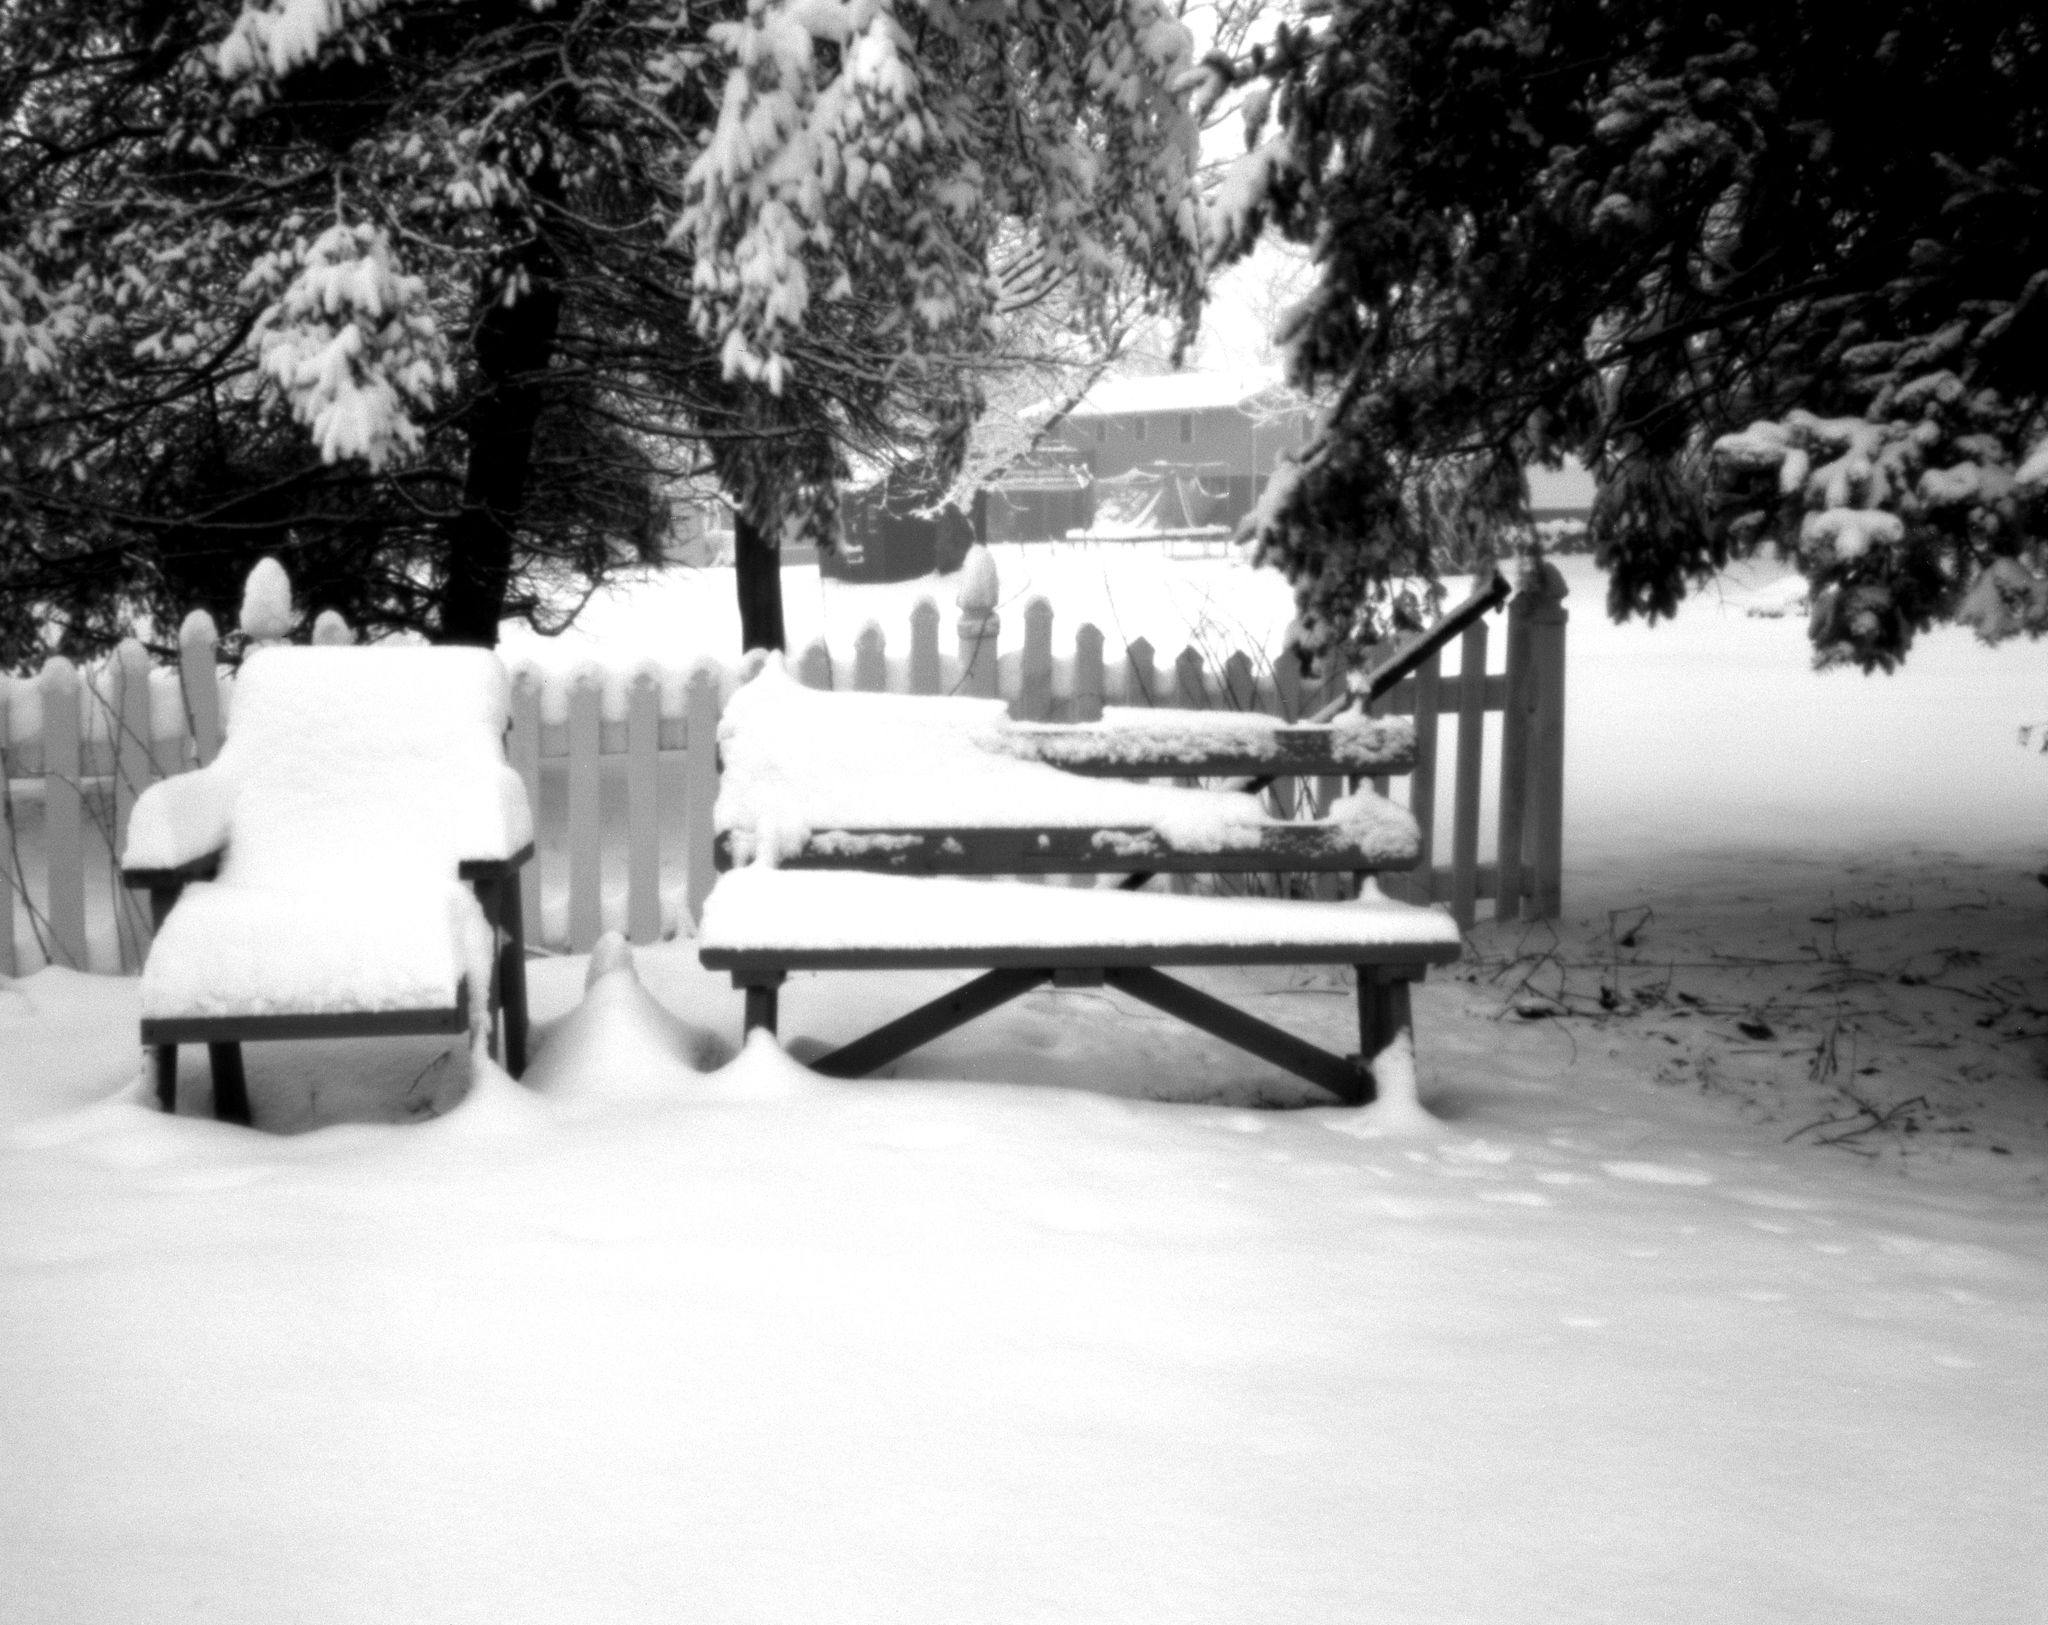 4x5_for_365_project_040_Backyard_Snow_Benches.jpg